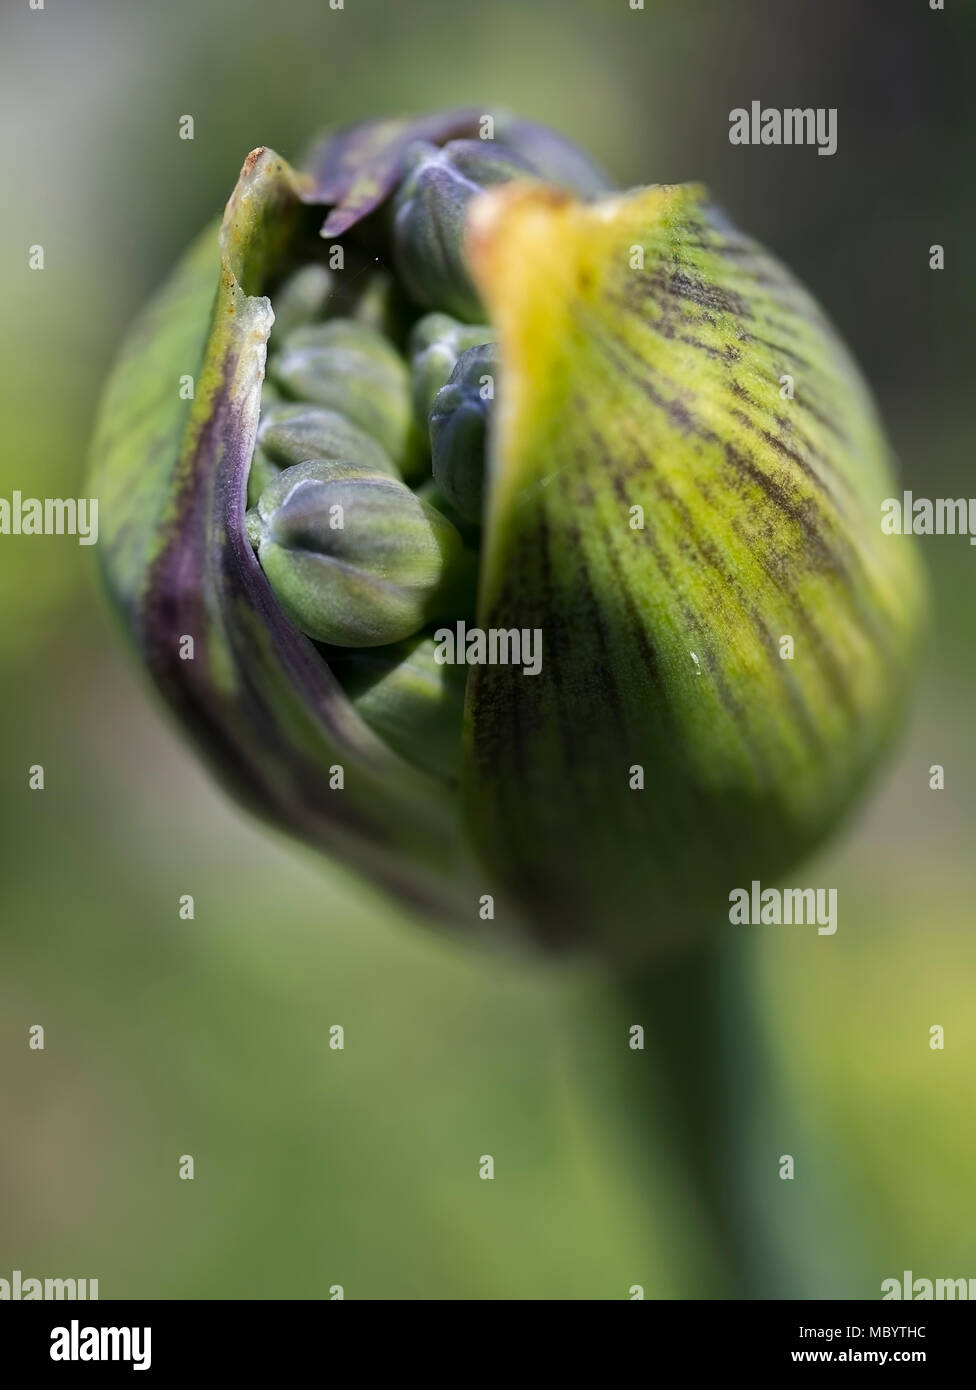 AGAPANTHUS - THE FLOWER OF LOVE Stock Photo